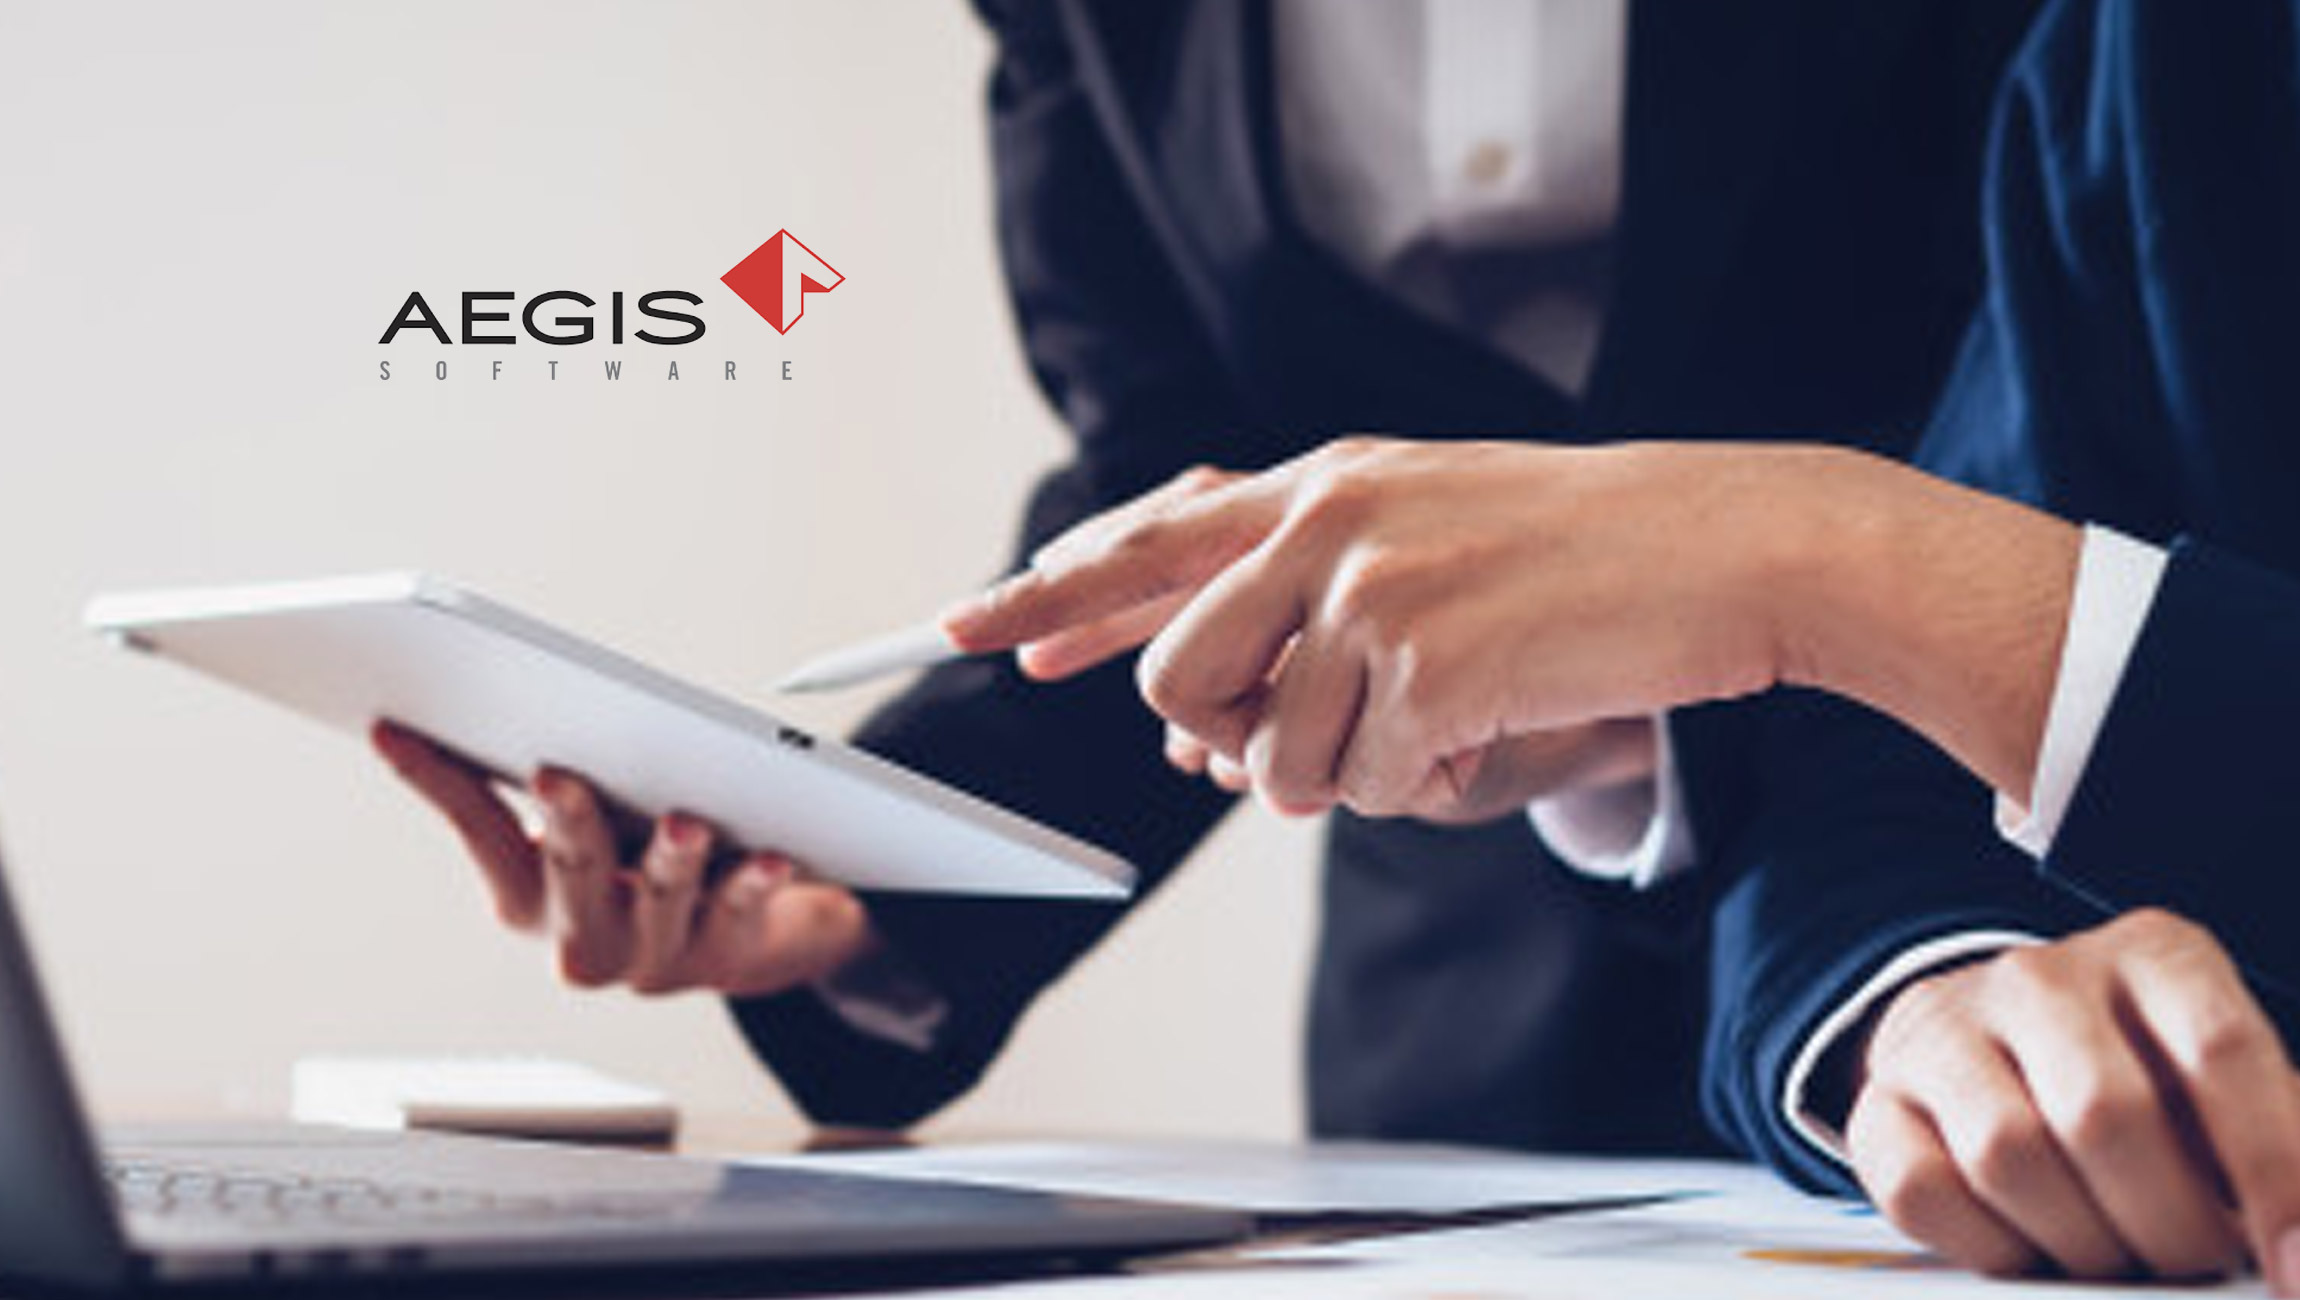 Aegis Software Announces Latest FactoryLogix Release, Providing Game-Changing Automate-to-Order Out-of-the-Box